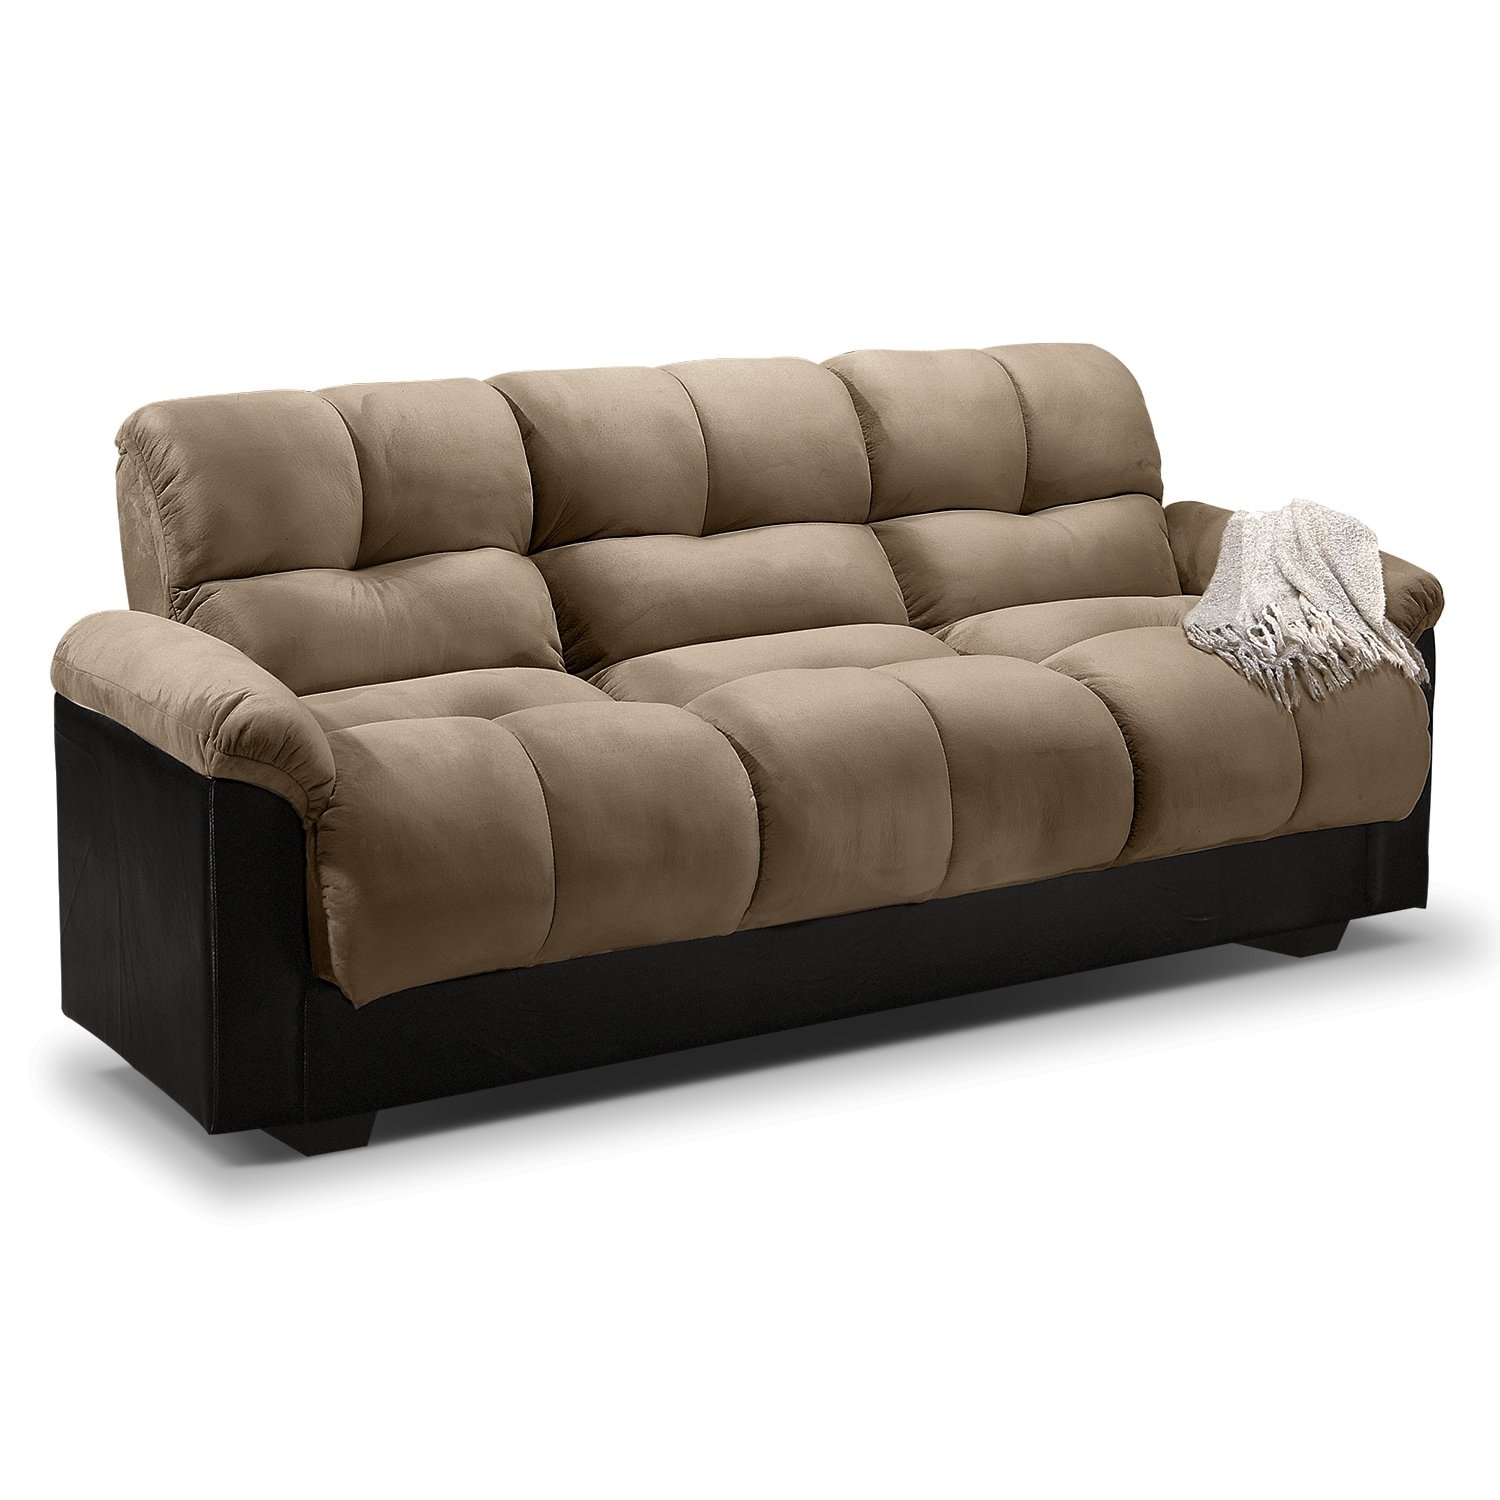 Sleeper Sofas Value City Value City Furniture